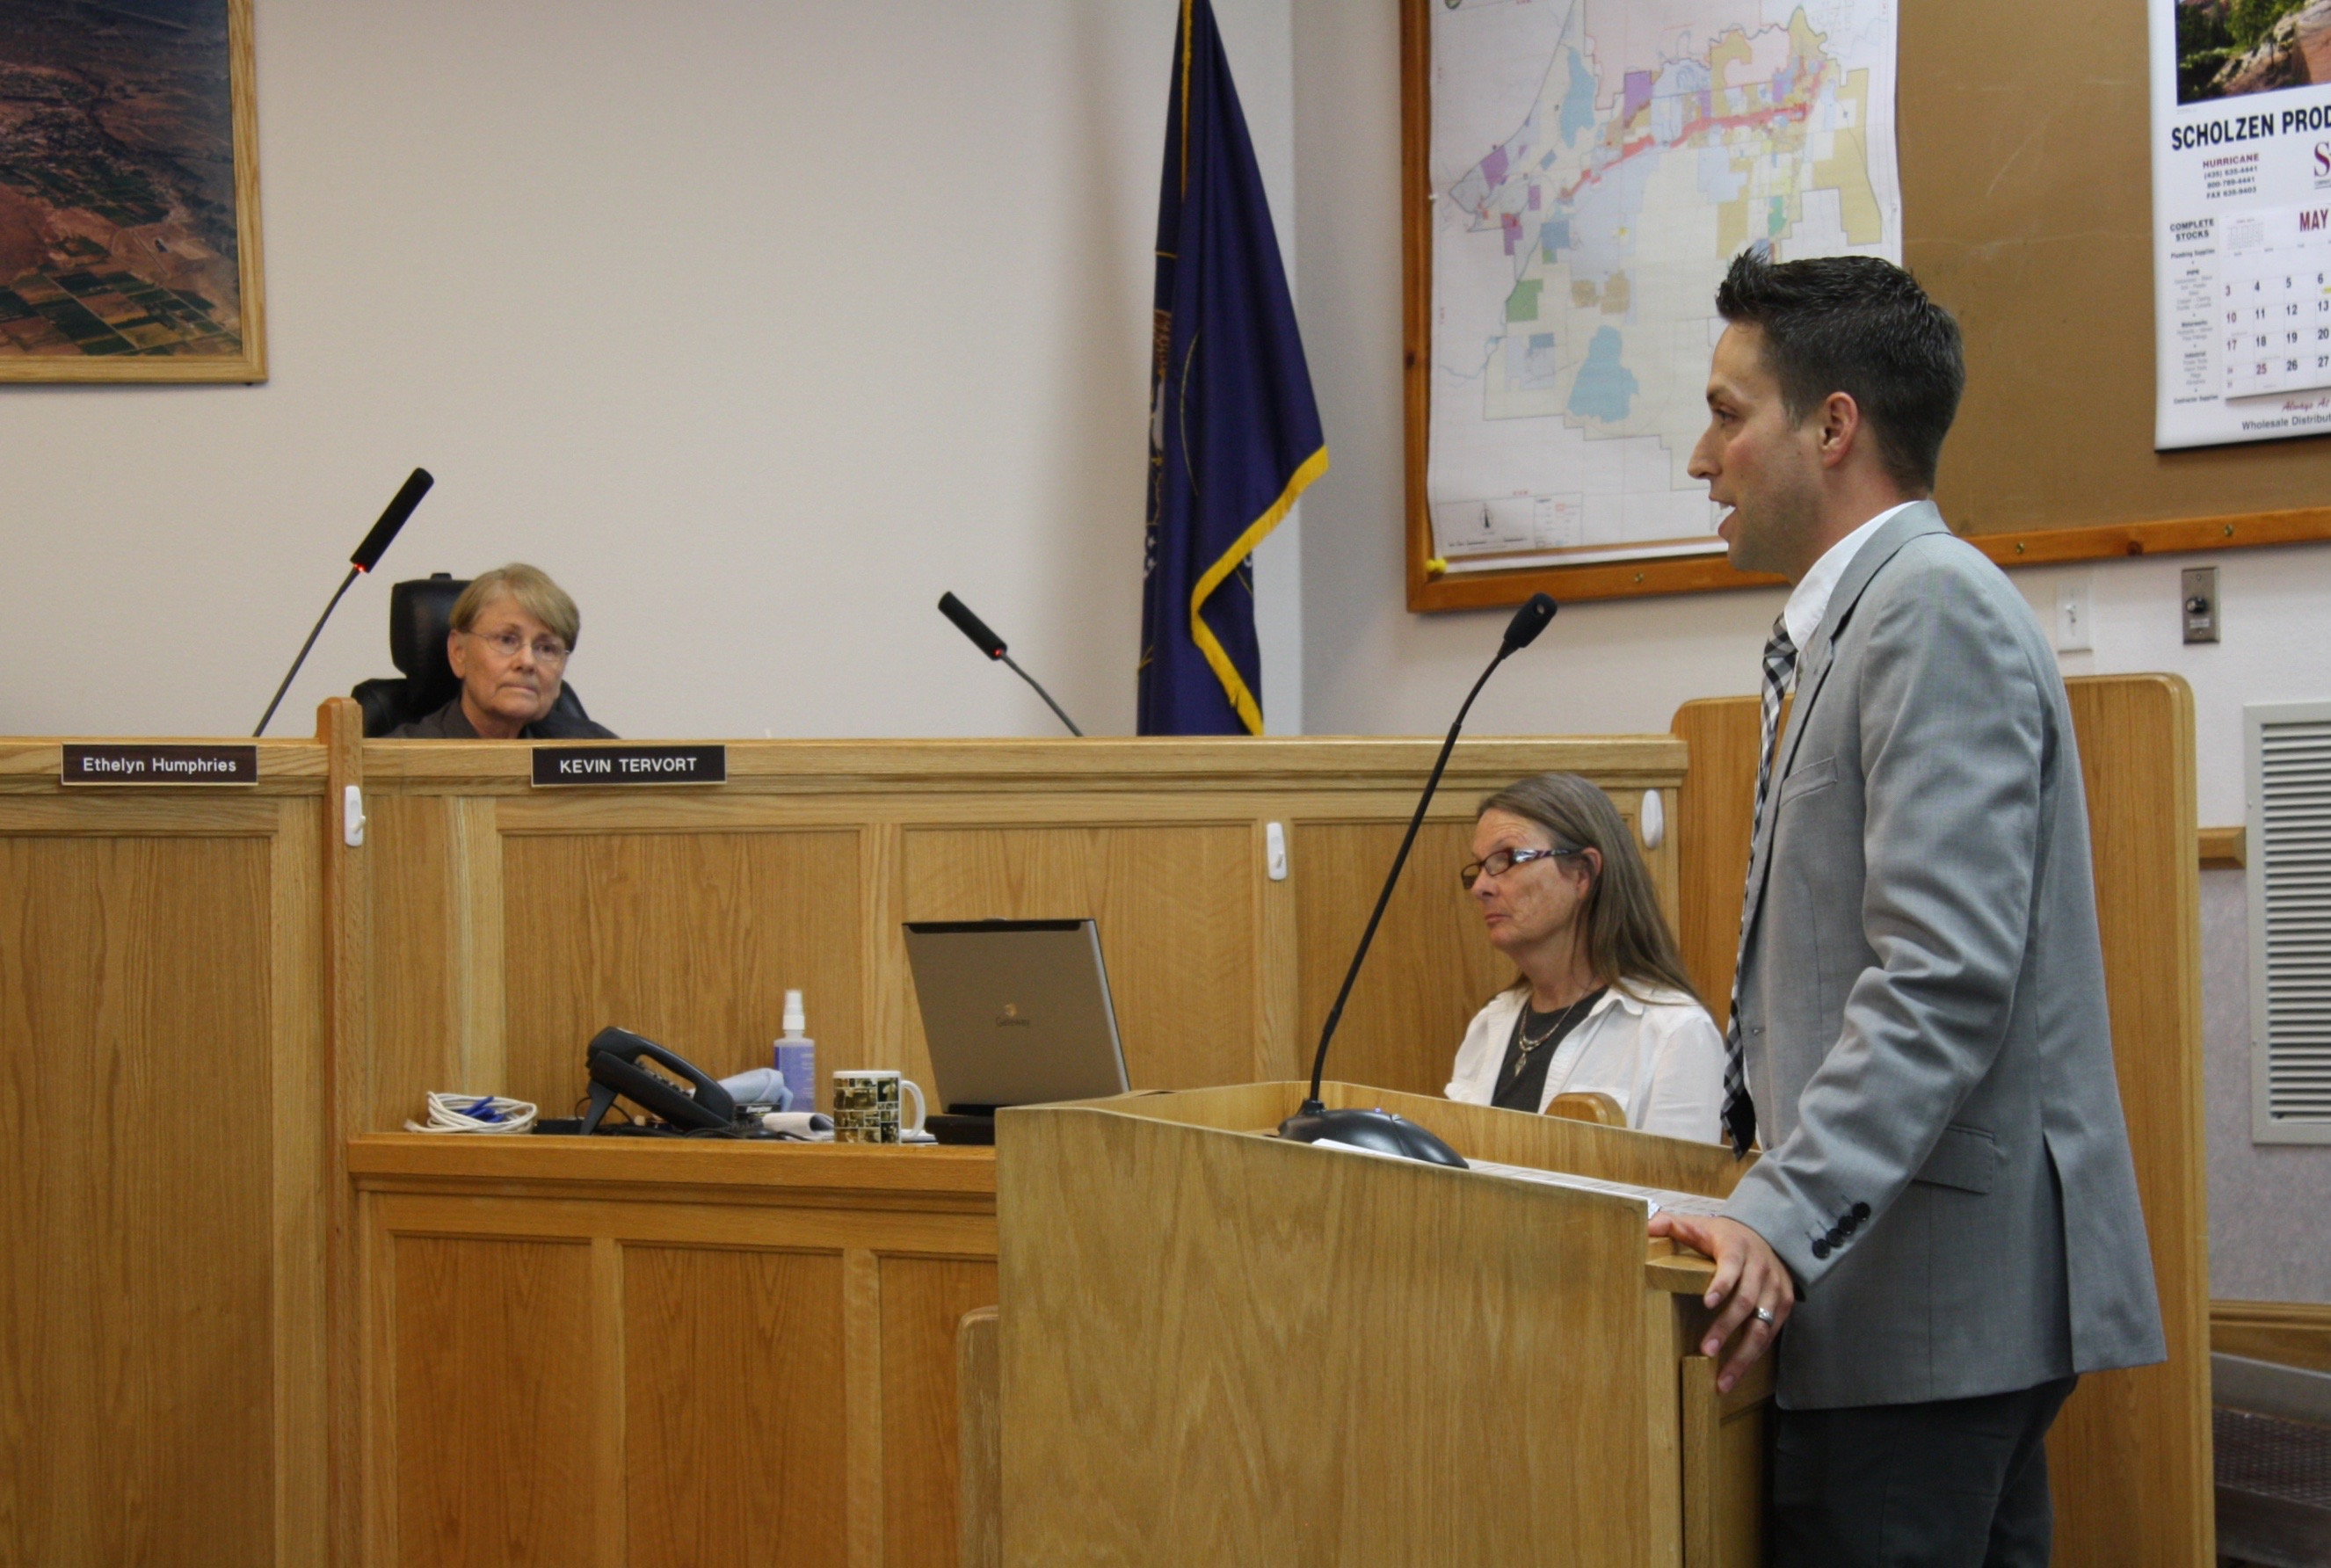 Attorney Eric Carson addresses Hurricane City Council on behalf of his client, Stephen Ward of Barista's Restaurant, requesting a hard-alcohol liquor license, Hurricane City Council Chambers, Hurricane, Utah, May 7, 2015   Photo by Reuben Wadsworth, St. George News